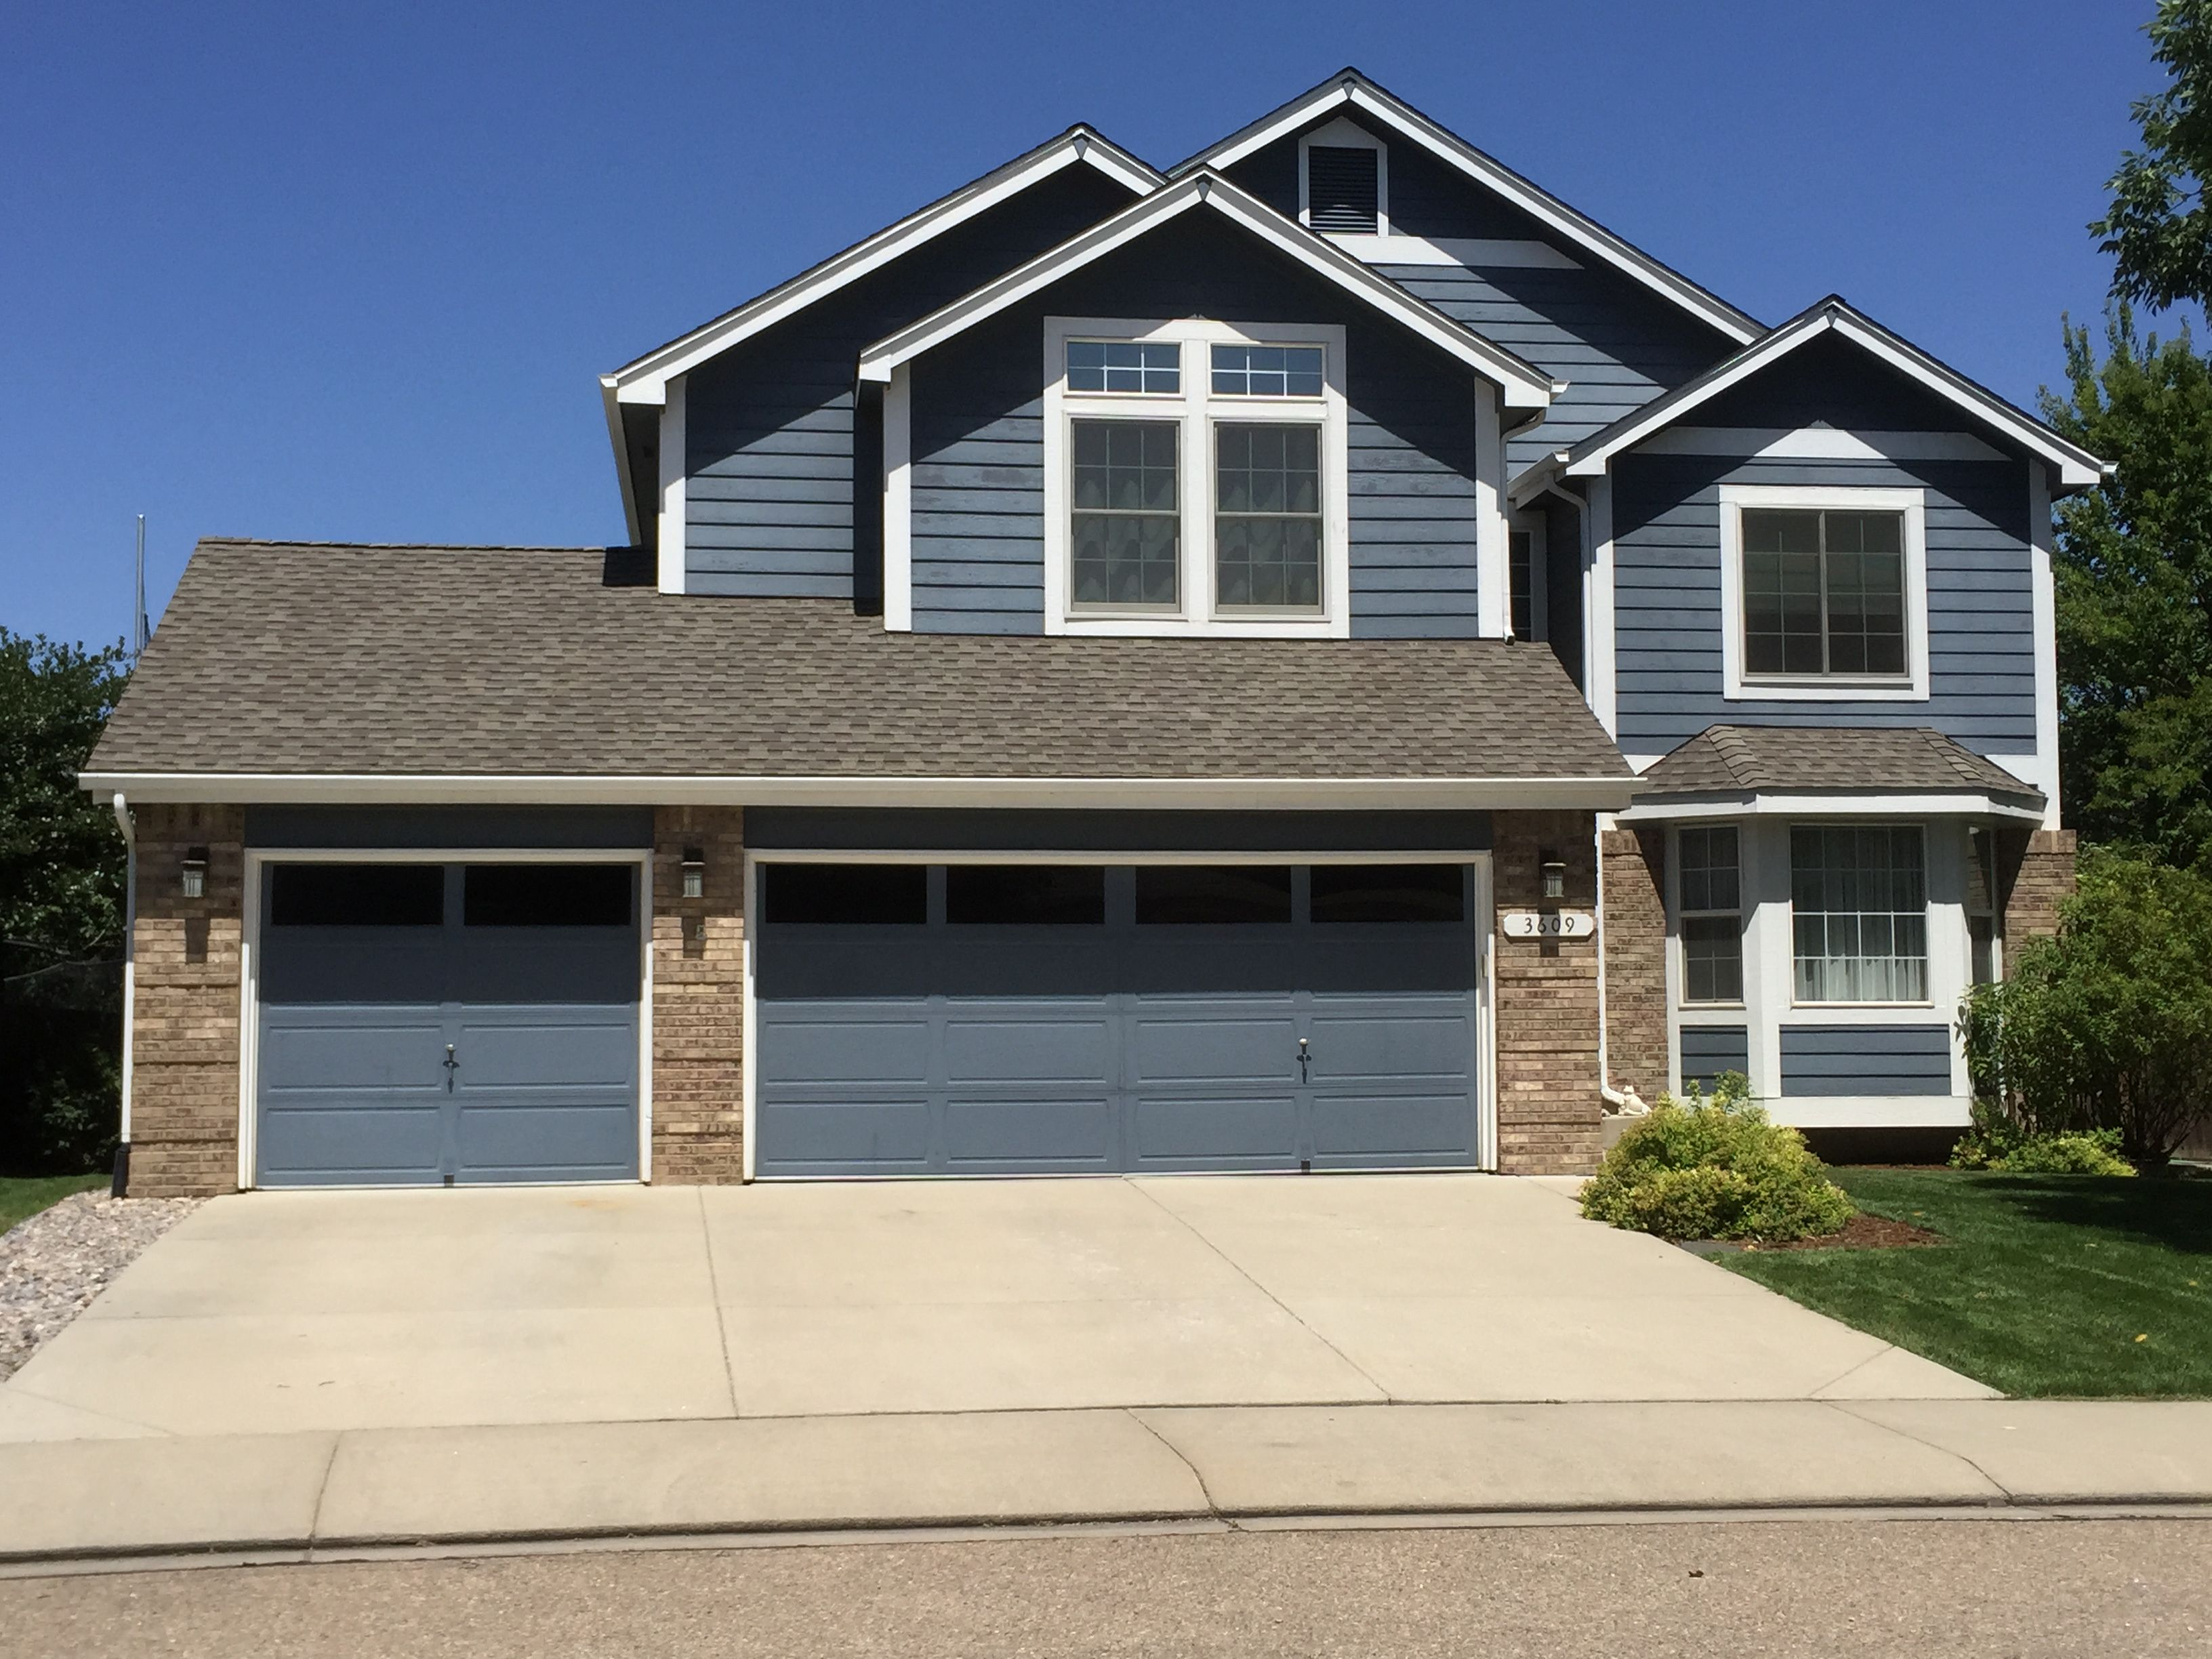 We Installed Weathered Wood Shingles From The Gaf Timberline Hd Shingle Line On This House In Longmont Weathered Wood Wood Shingles Shingling